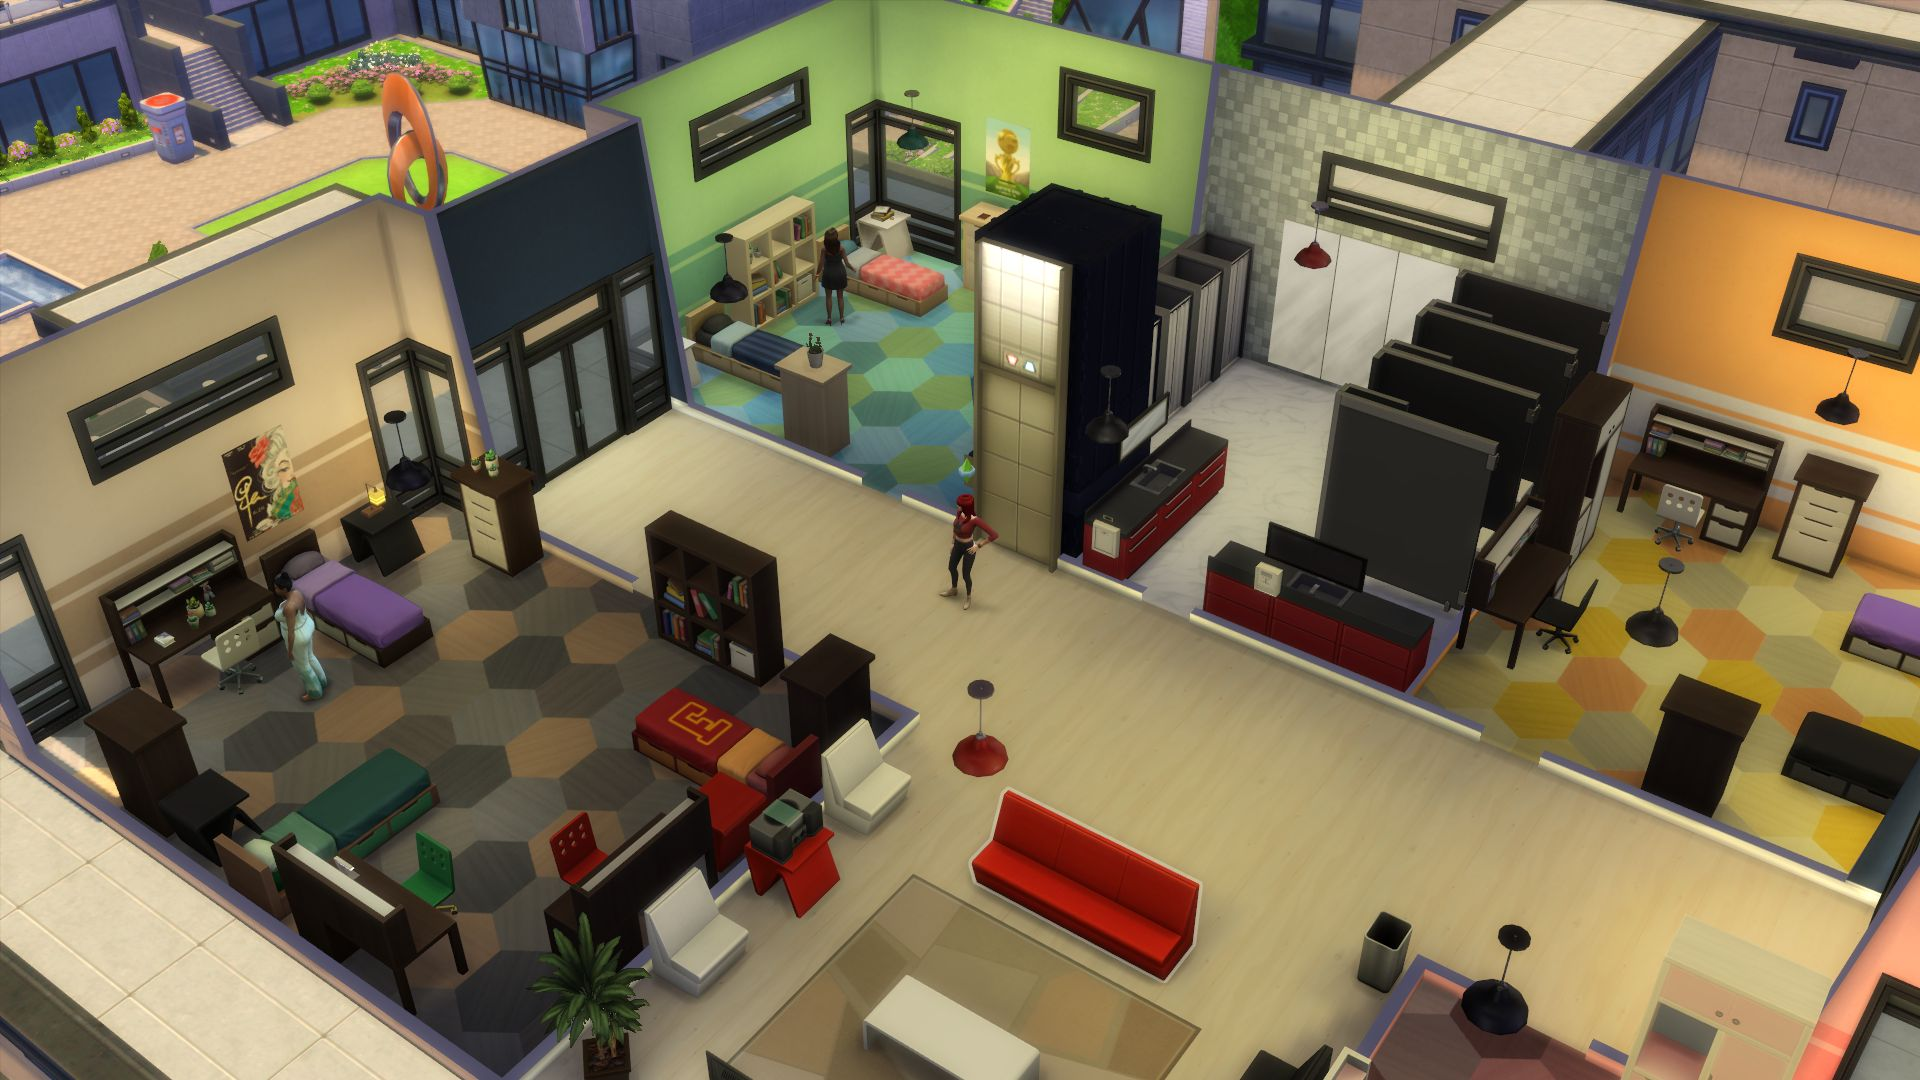 The Sims 4 Discover University Is The Best And Worst Of College Life Pcgamesn